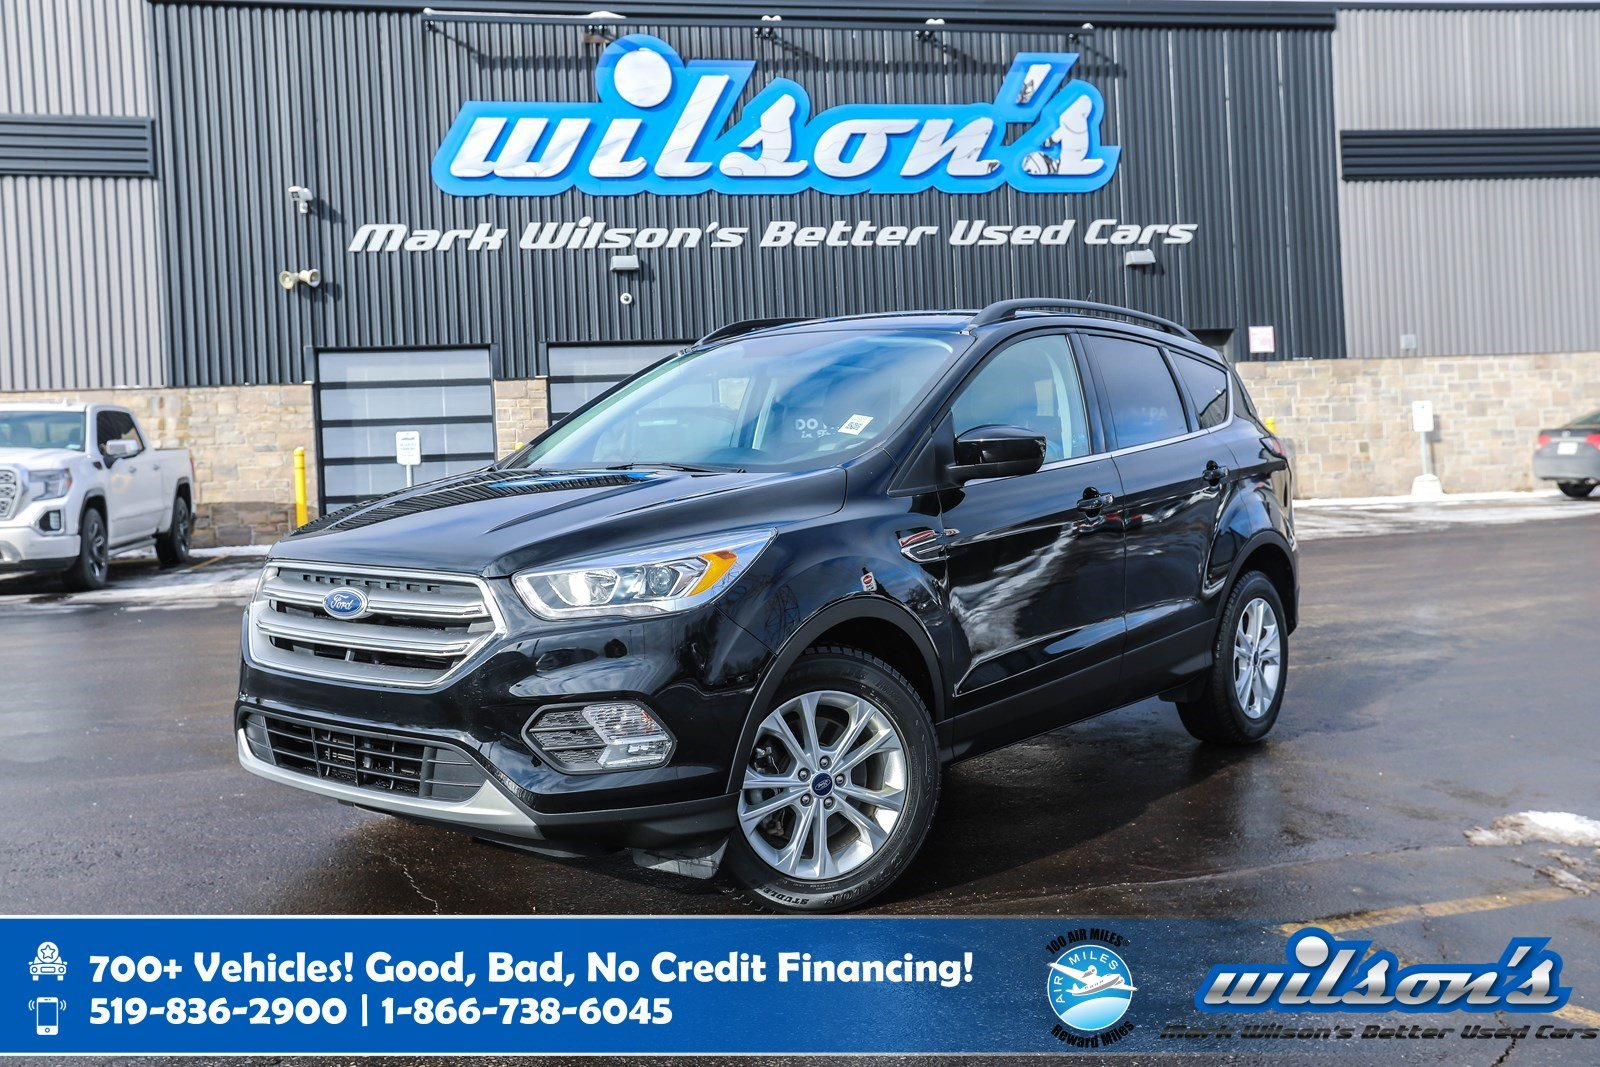 Certified Pre-Owned 2017 Ford Escape SE 4WD, Navigation, Rear Camera + Sensors, Heated + Power Seats, Bluetooth, Alloys and more!